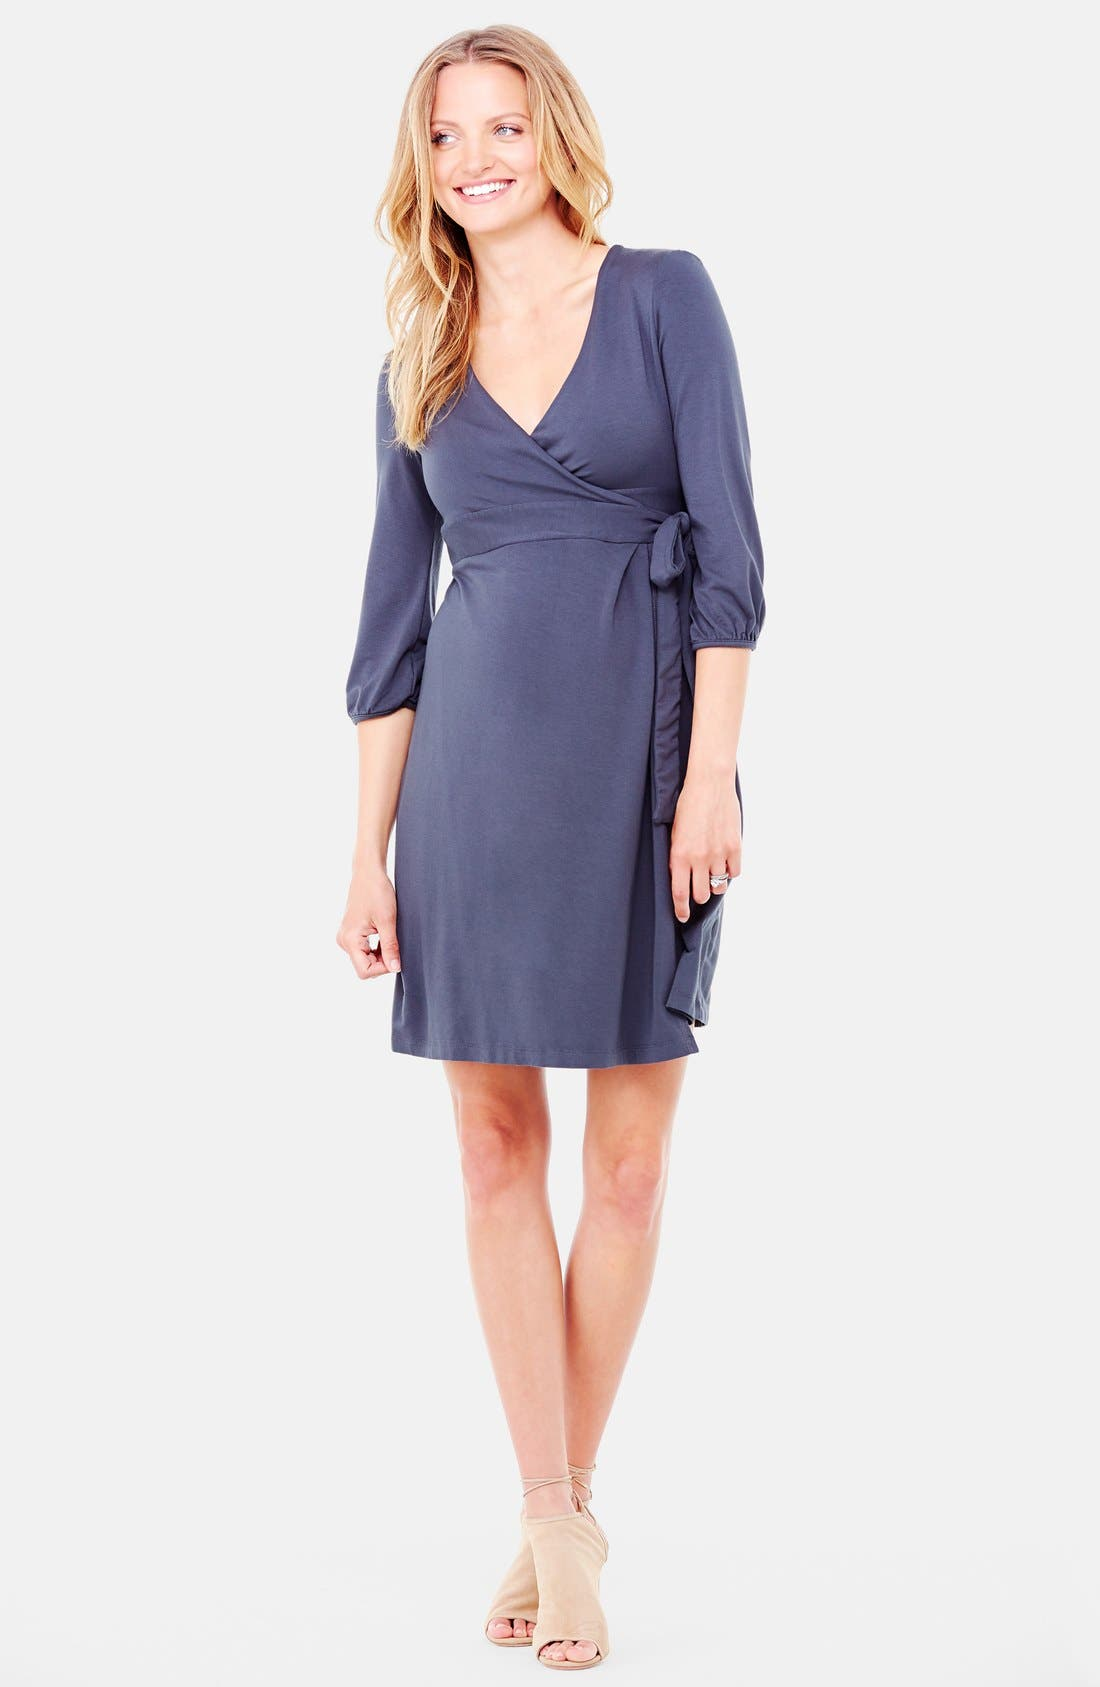 INGRID & ISABEL® Nursing Friendly Maternity Wrap Dress